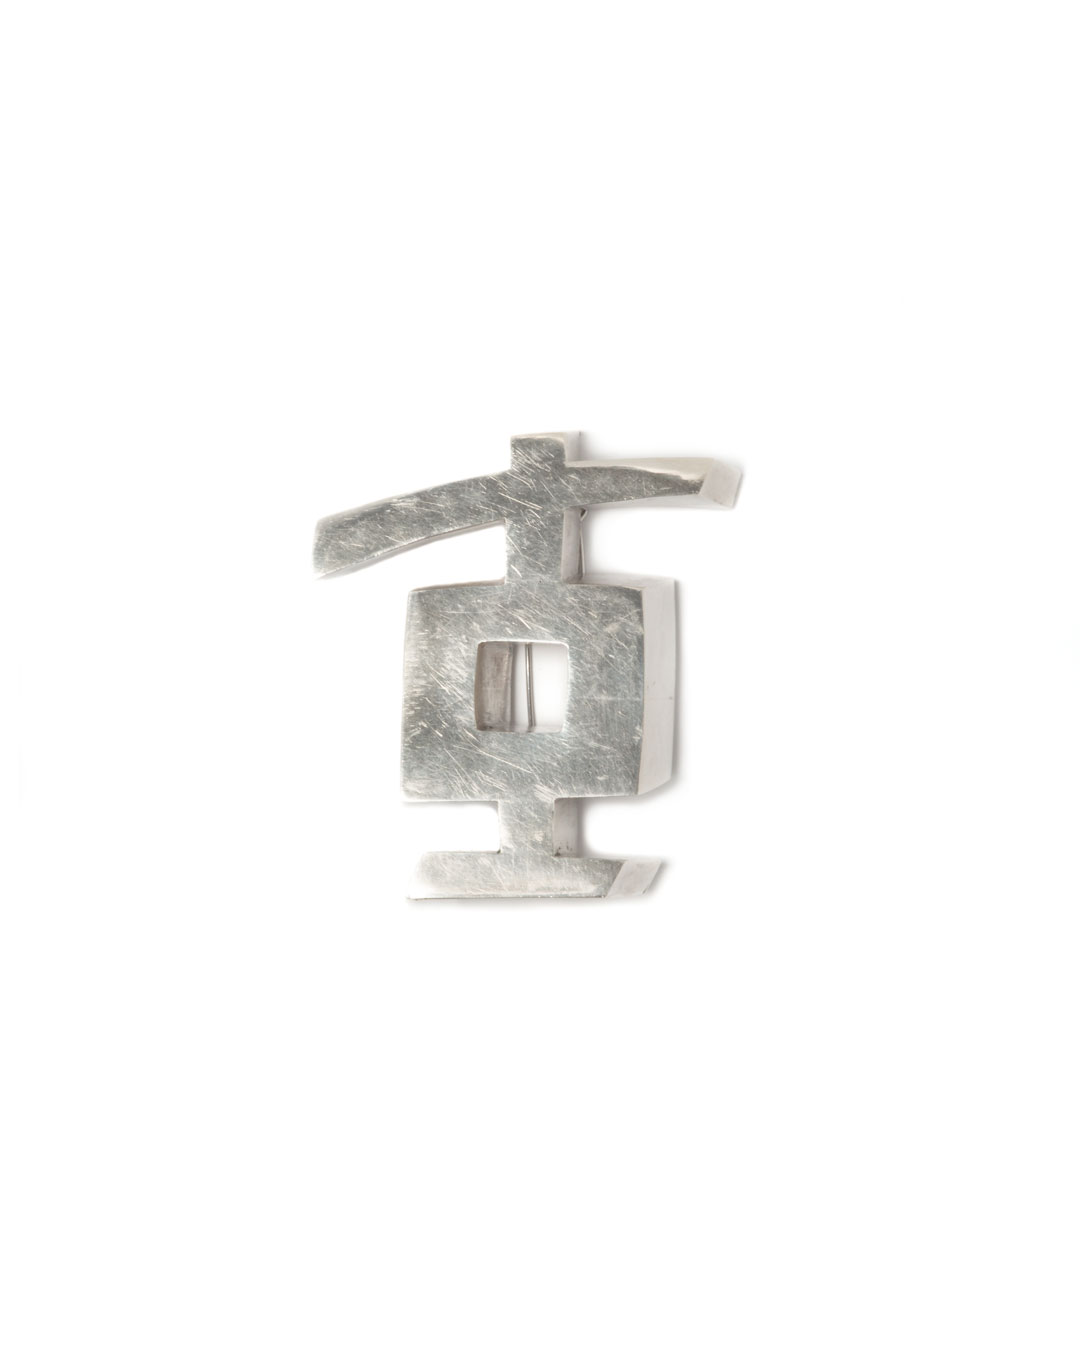 Winfried Krüger, untitled, 1986, brooch; silver, 80 x 60 mm, €1455